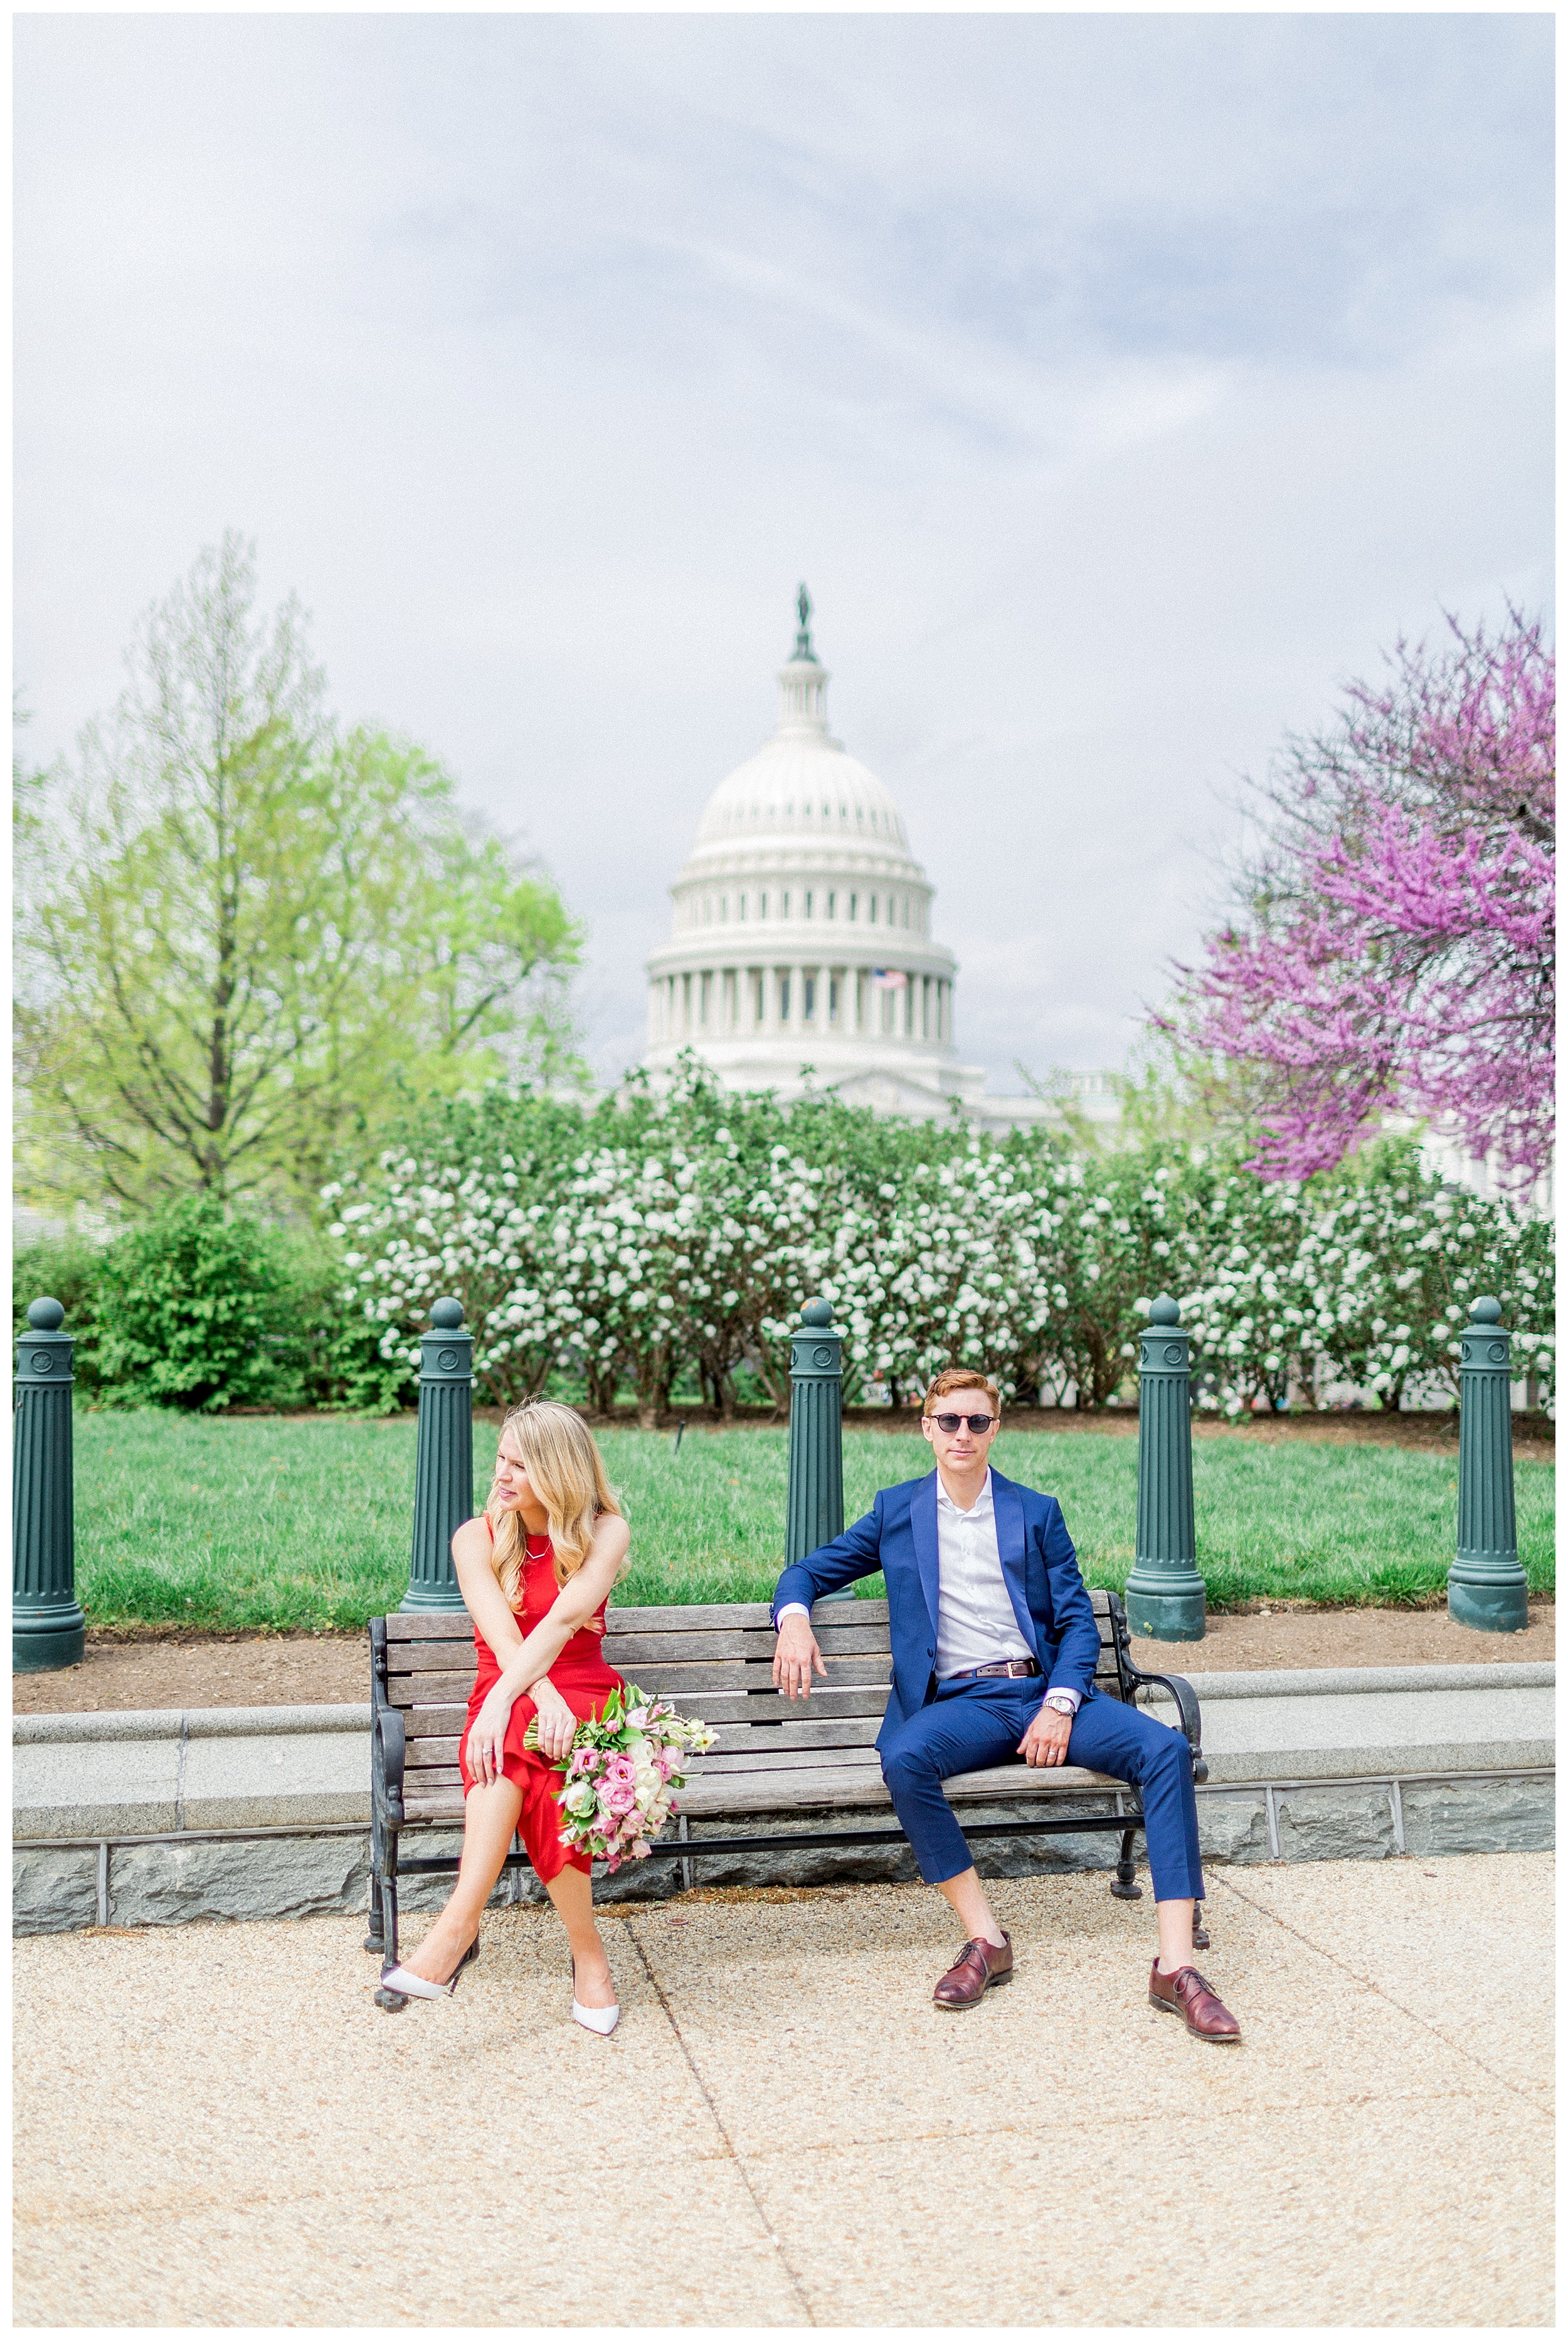 District of Columbia Elopement | Library of Congress Engagement Session Washington DC_0025.jpg